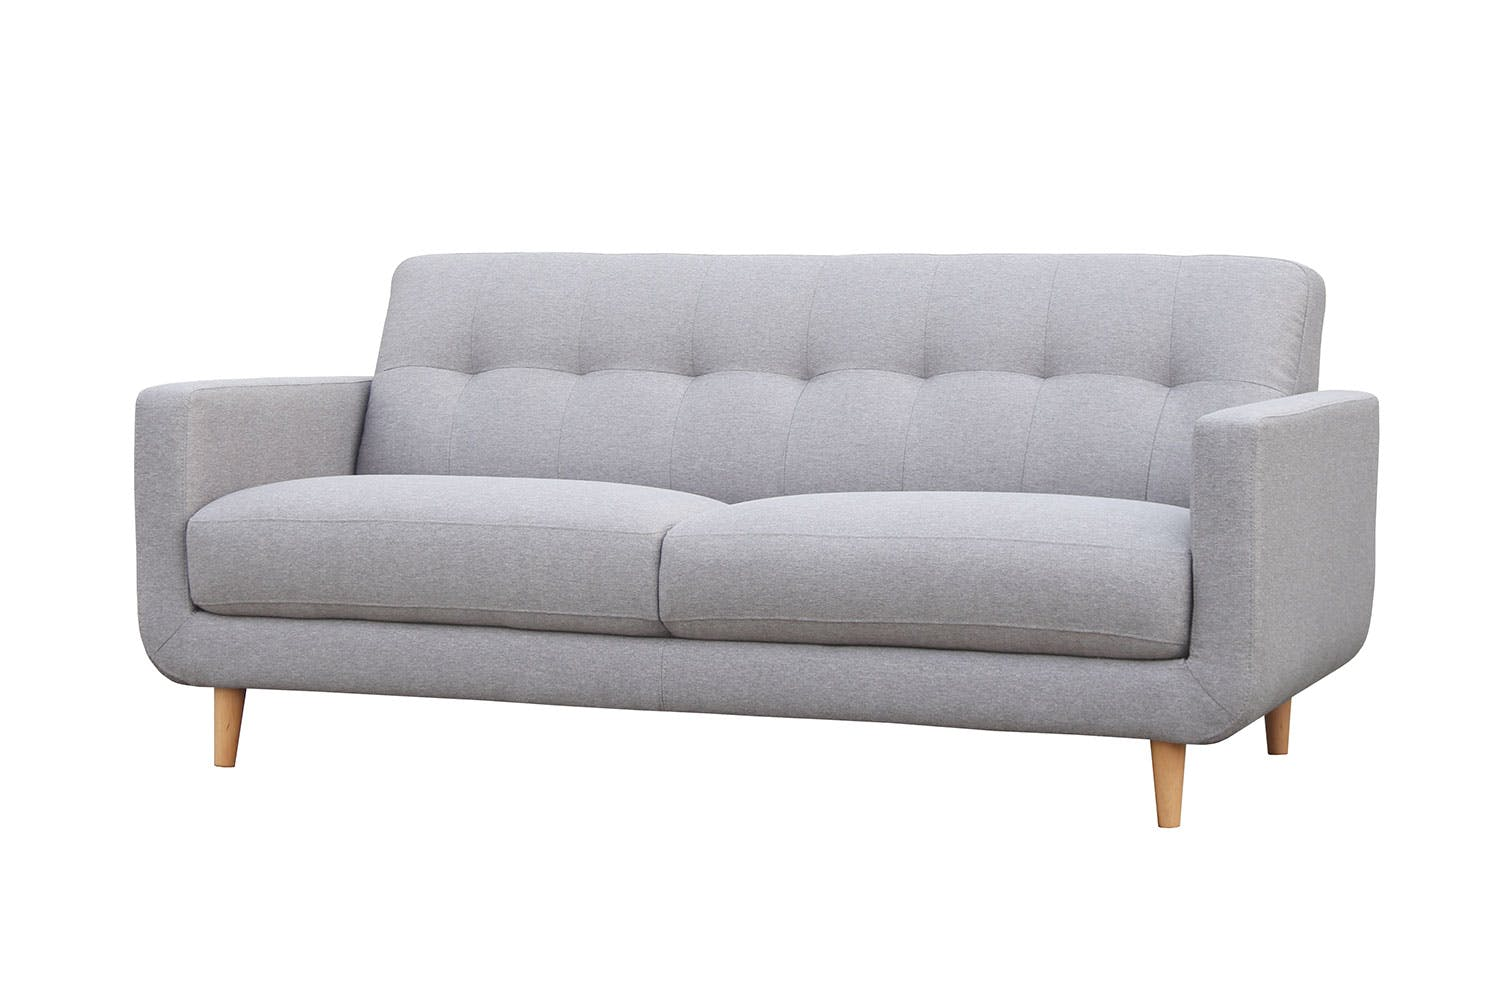 Hogan 3 Seater Fabric Sofa With Chaise Dimensions